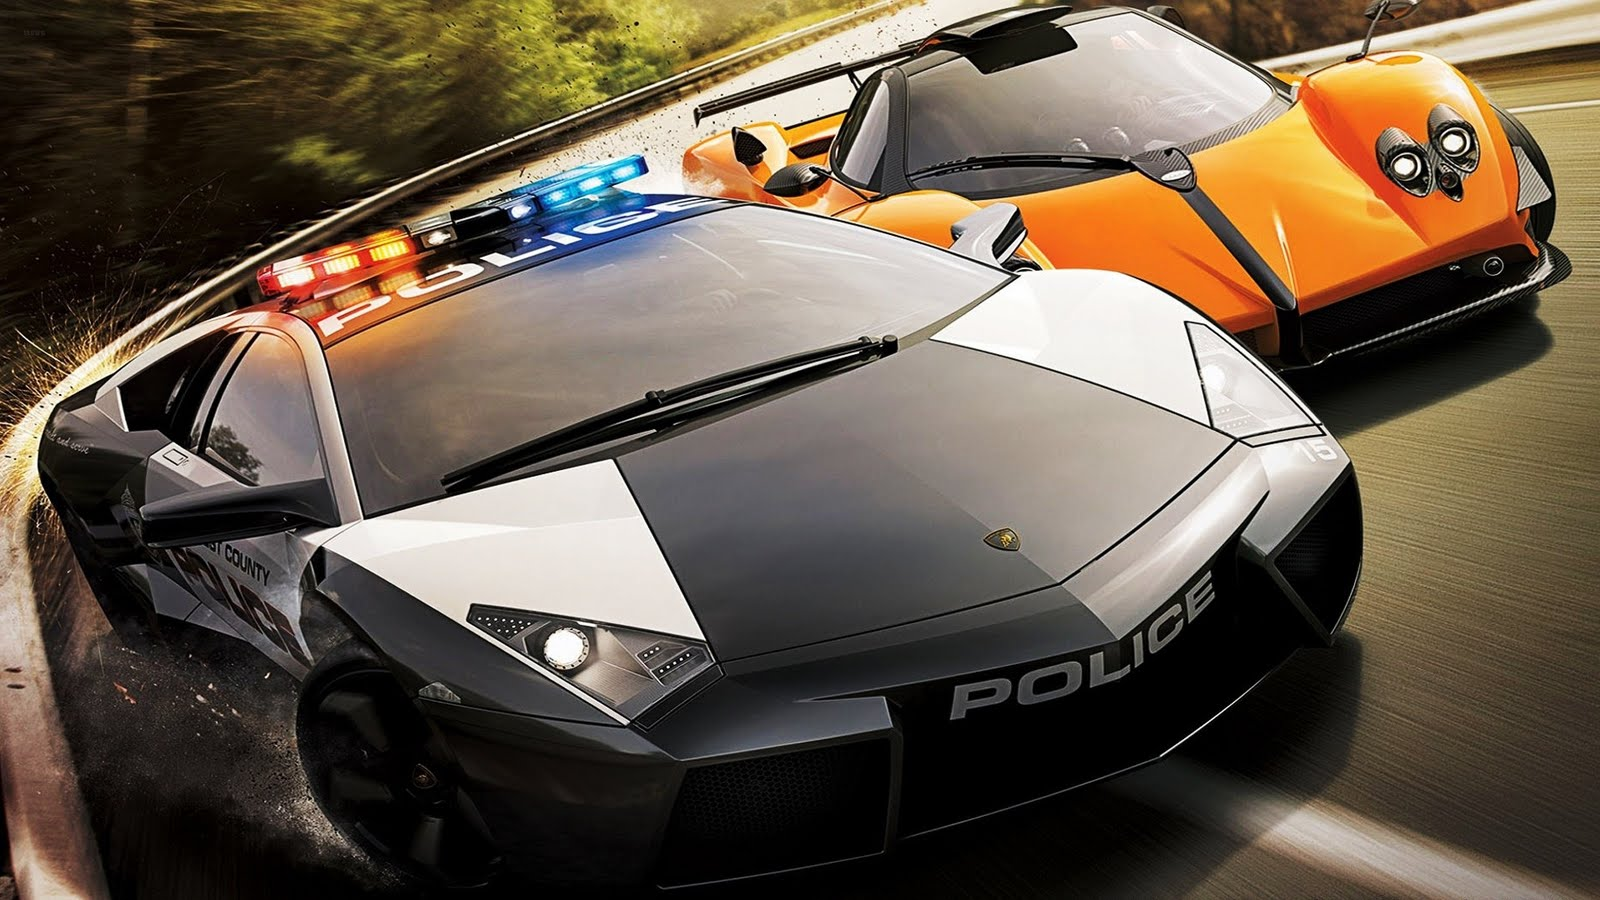 http://1.bp.blogspot.com/-DycLle1yIKY/TafPnnSbiOI/AAAAAAAACk0/Ikx3vvnHe7o/s1600/5447-need-for-speed-hot-pursuit-2010-wallpaper.jpg